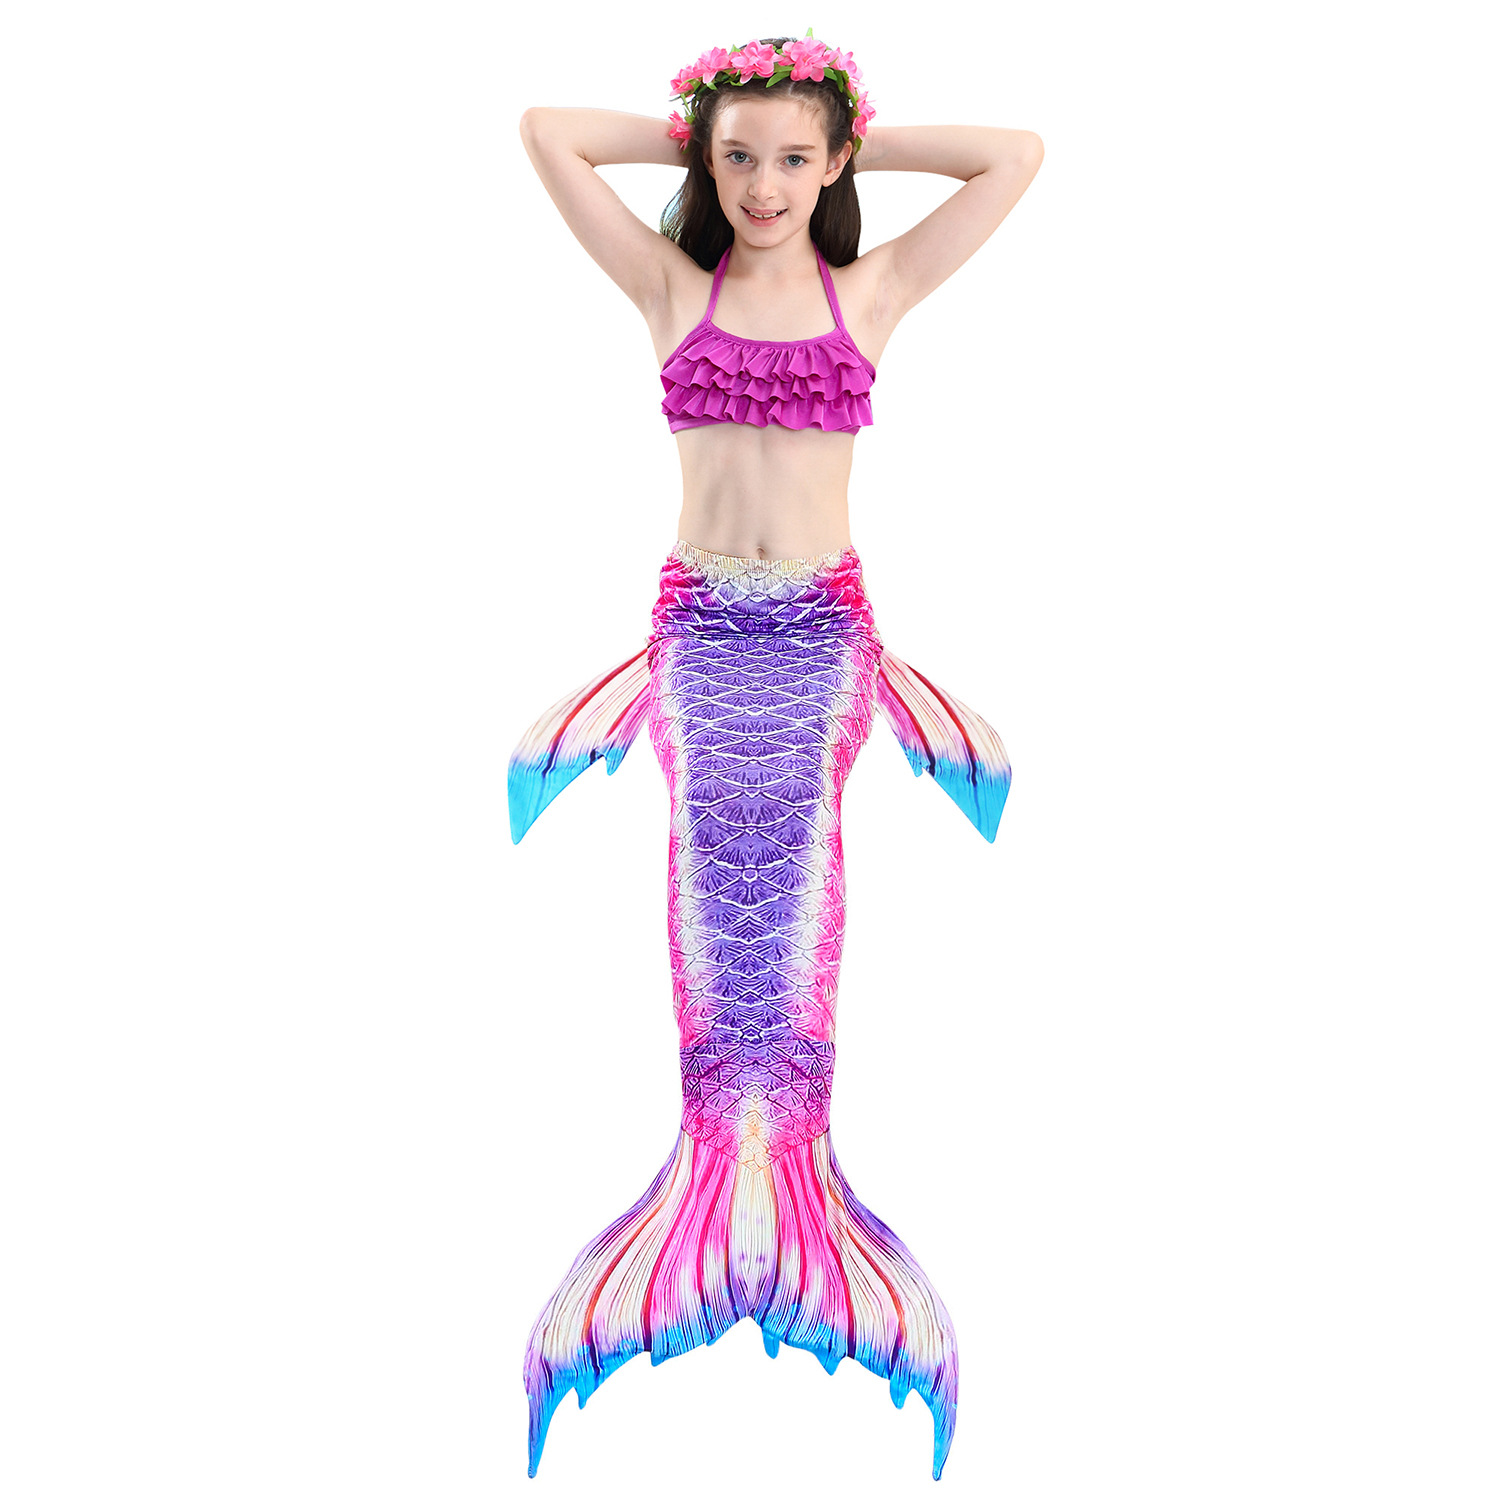 9282511528 898390851 - 4PCS/Set HOT Kids Girls Mermaid Tails with Fin Swimsuit Bikini Bathing Suit Dress for Girls With Flipper Monofin For Swim